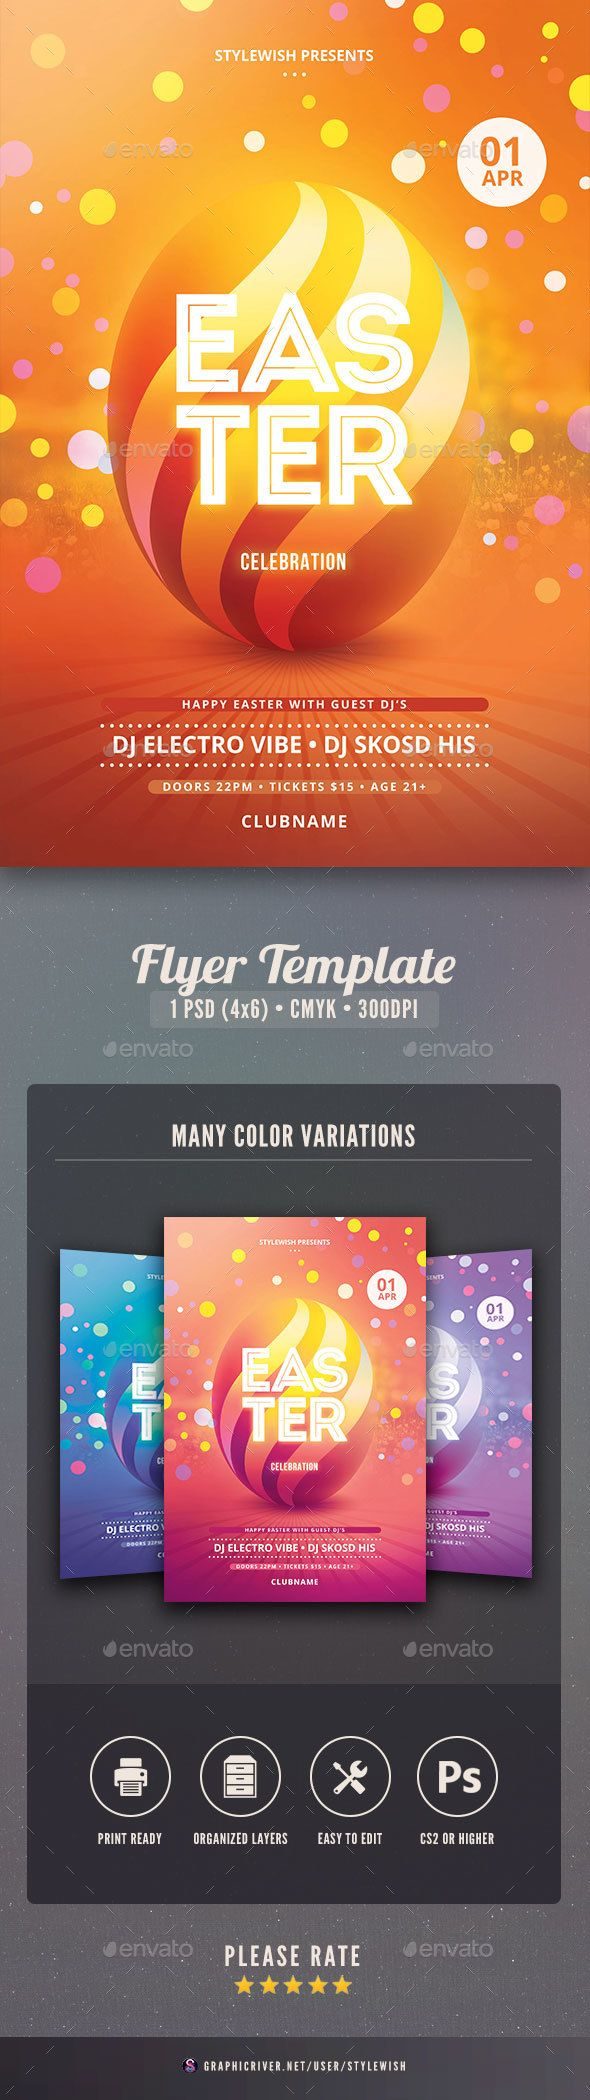 Best Flyer Templates Images On